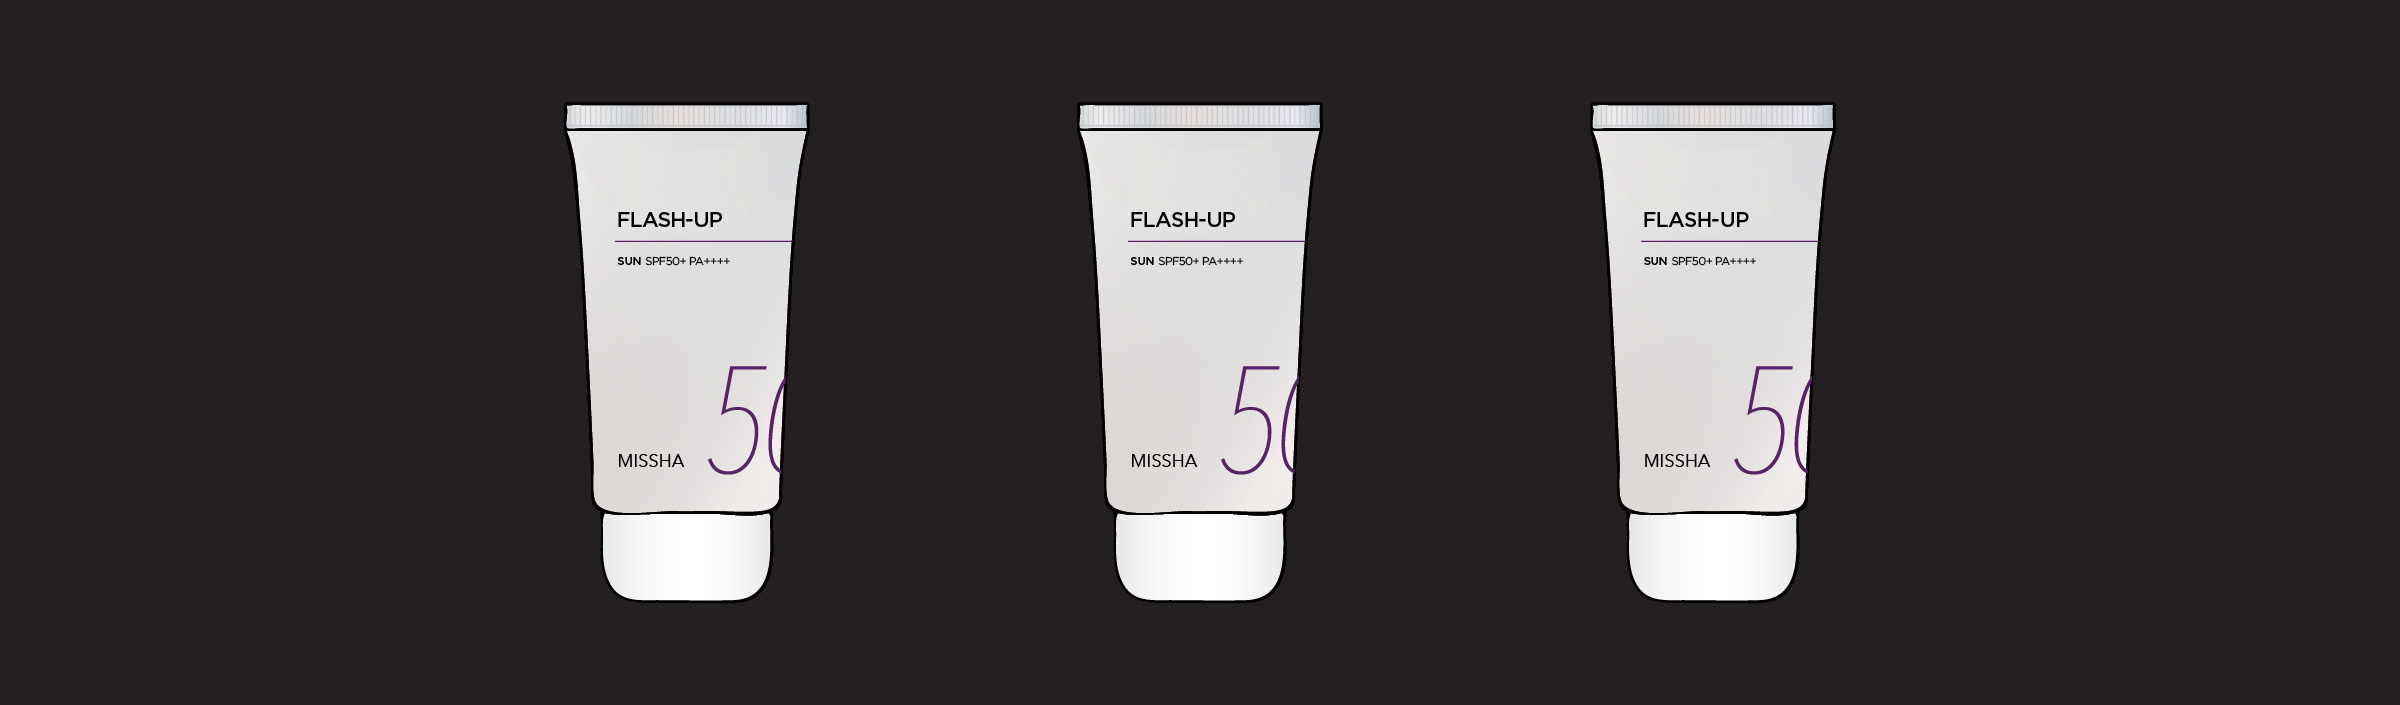 Missha Flash Up Sun Review.jpg